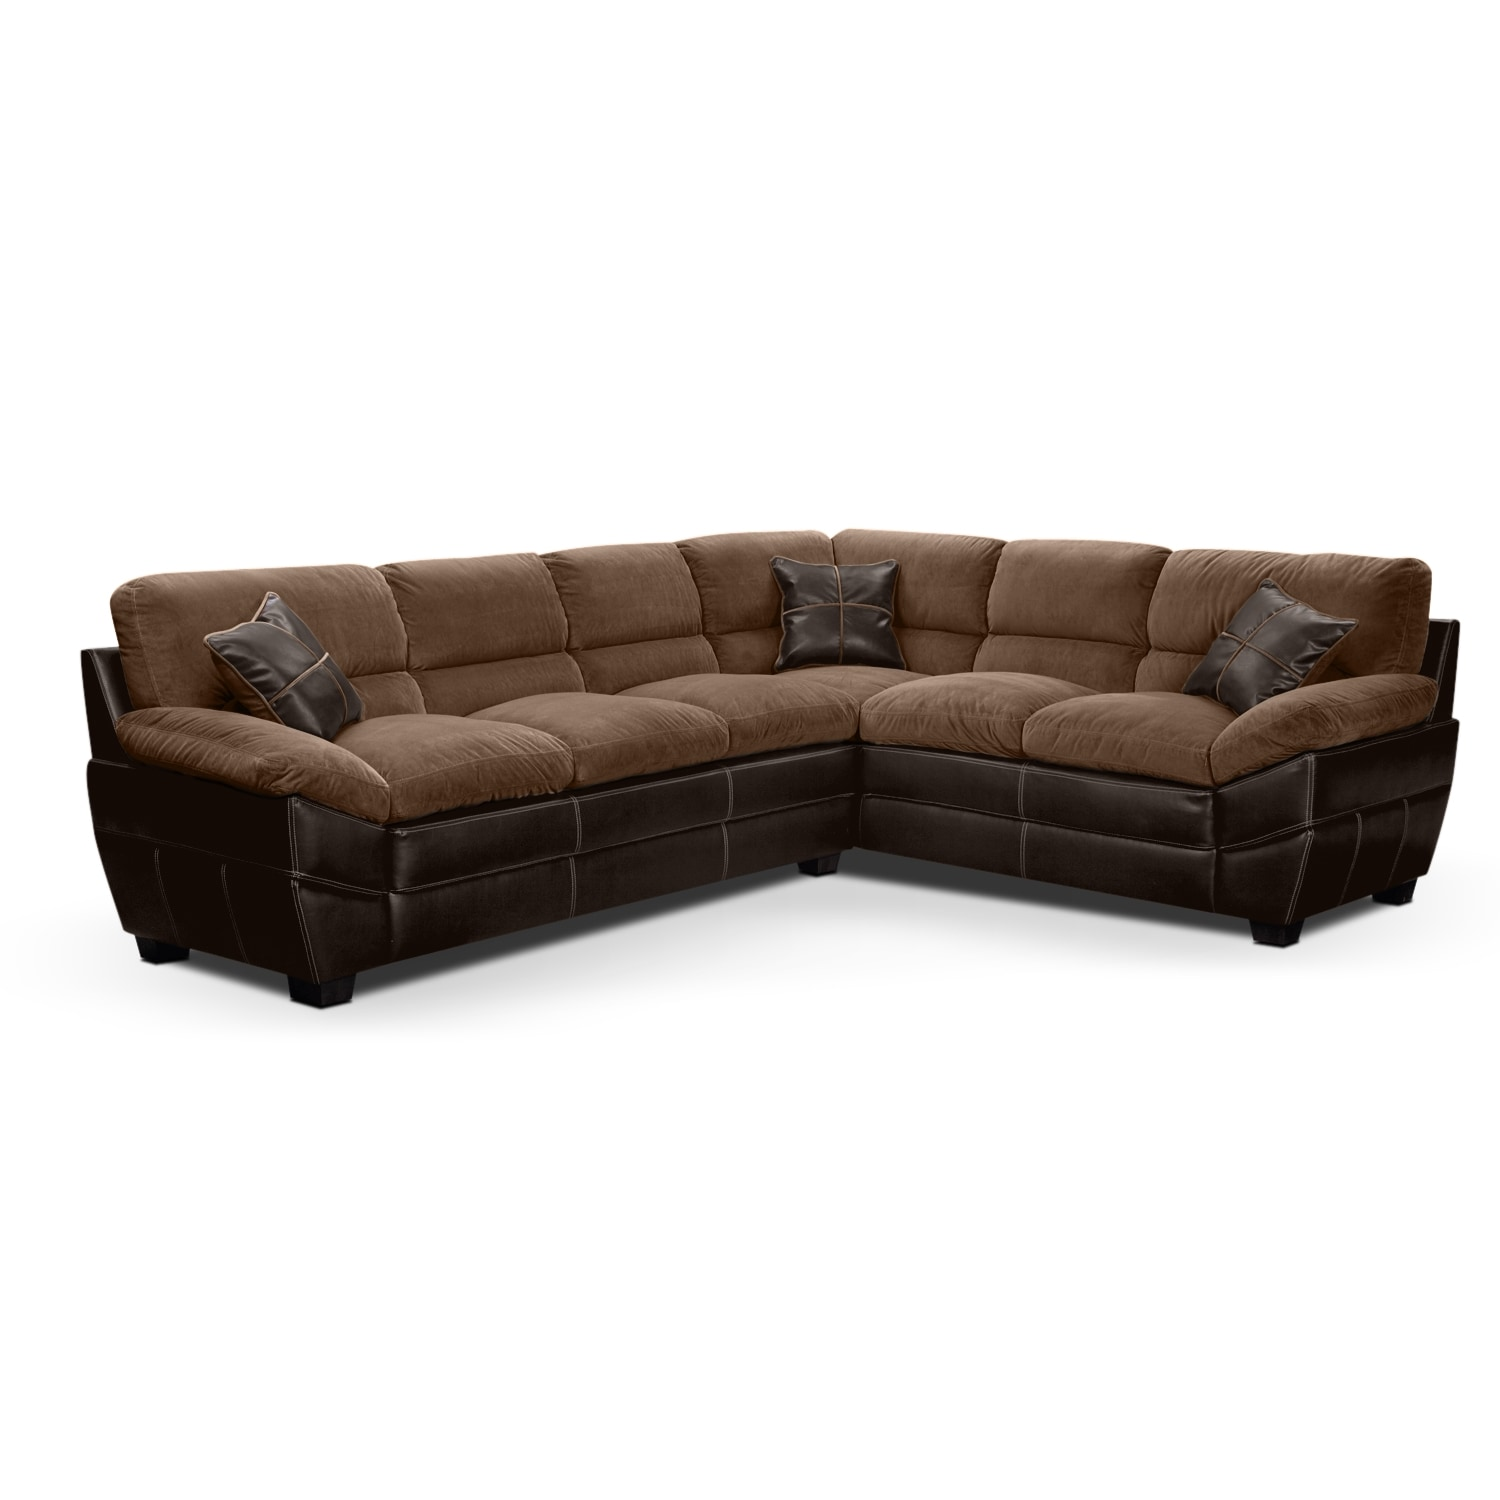 Ashley Furniture Outlet Locations American Eagle Outlet Locations Elsavadorla